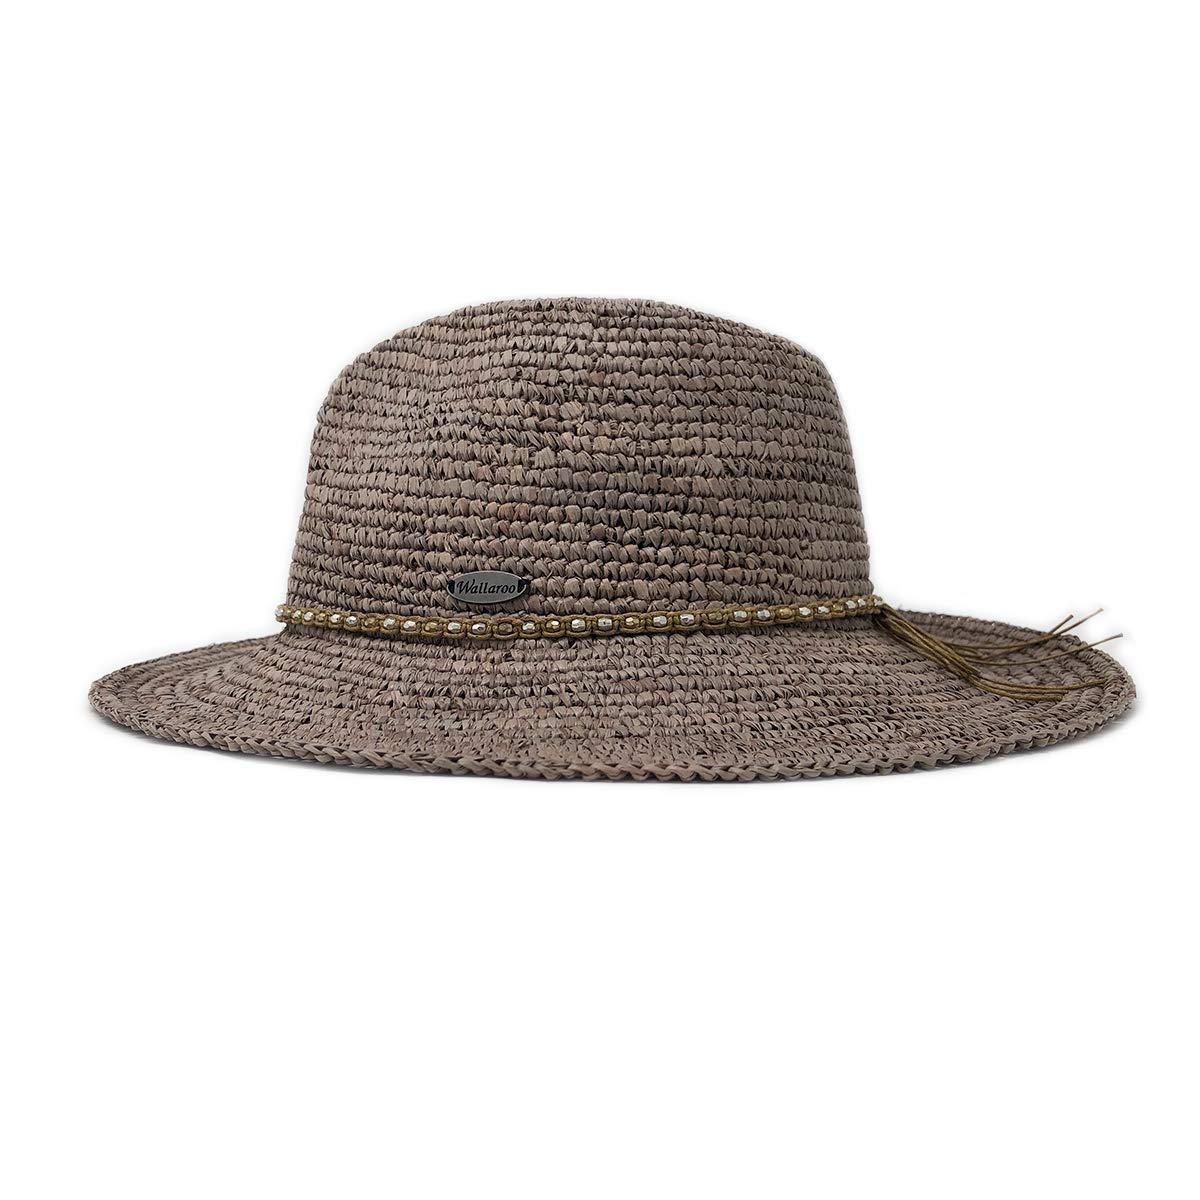 Wallaroo Hat Company Women's W Collection Malibu Fedora - Mushroom - Raffia by Wallaroo Hat Company (Image #2)